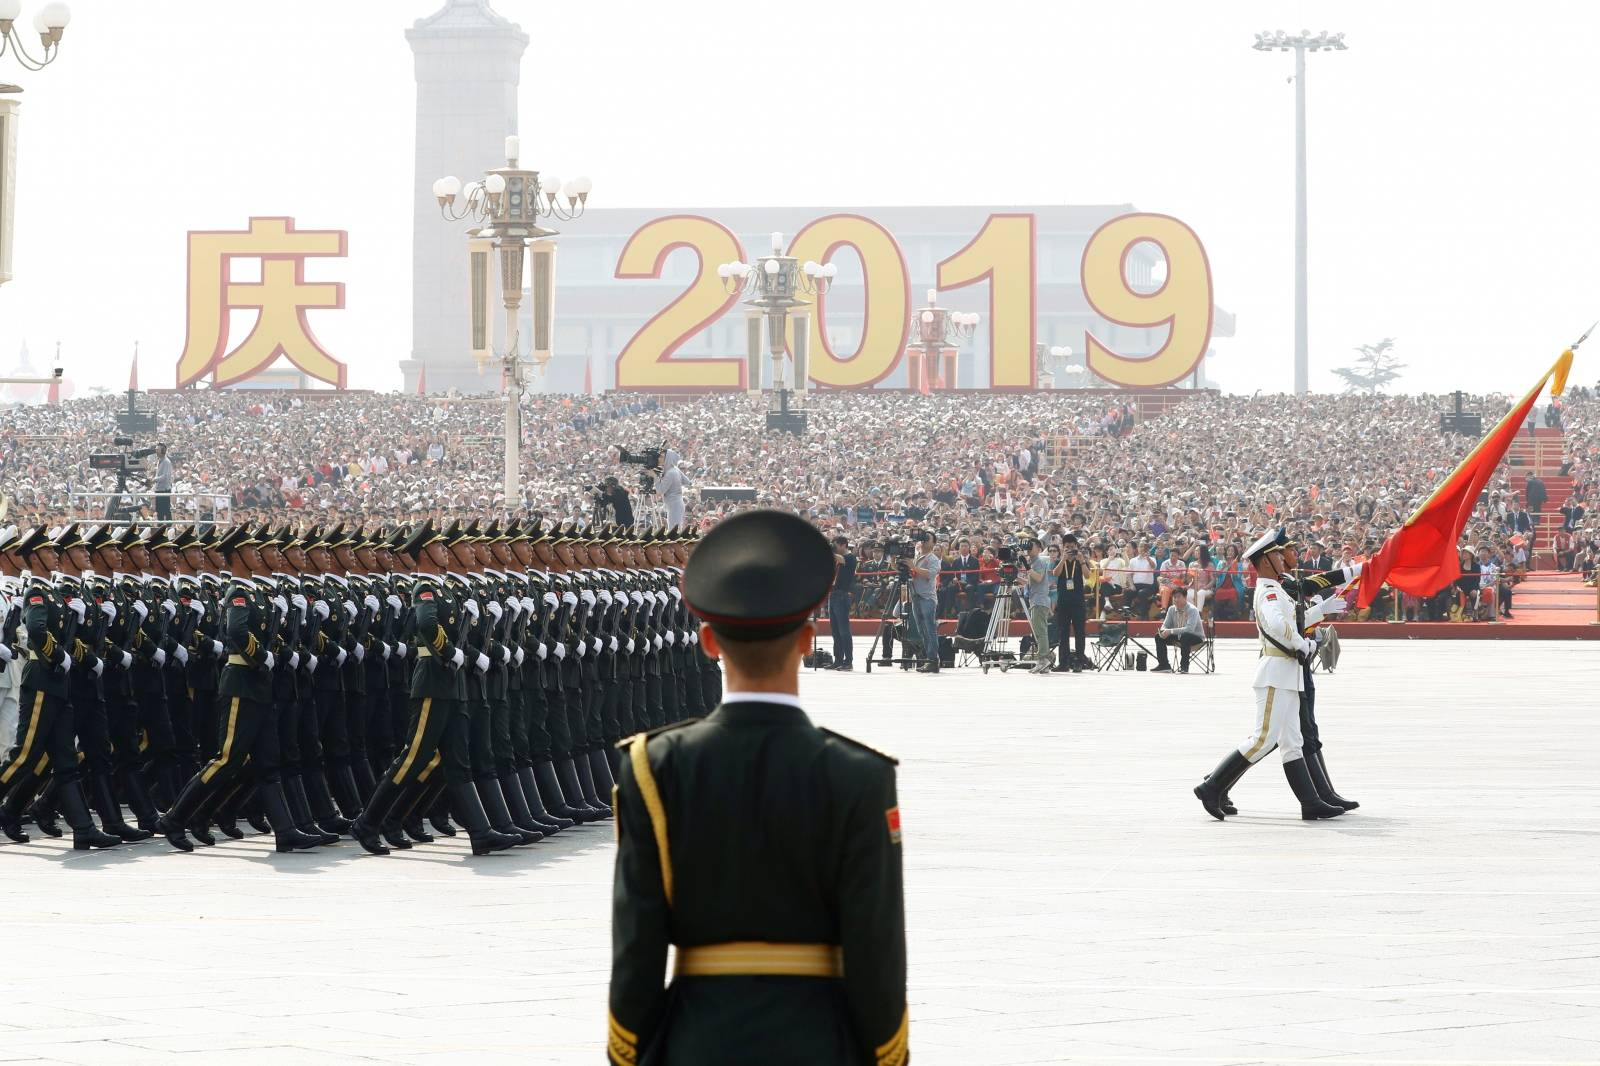 Soldiers of People's Liberation Army (PLA) march in formation past Tiananmen Square during the military parade marking the 70th founding anniversary of People's Republic of China